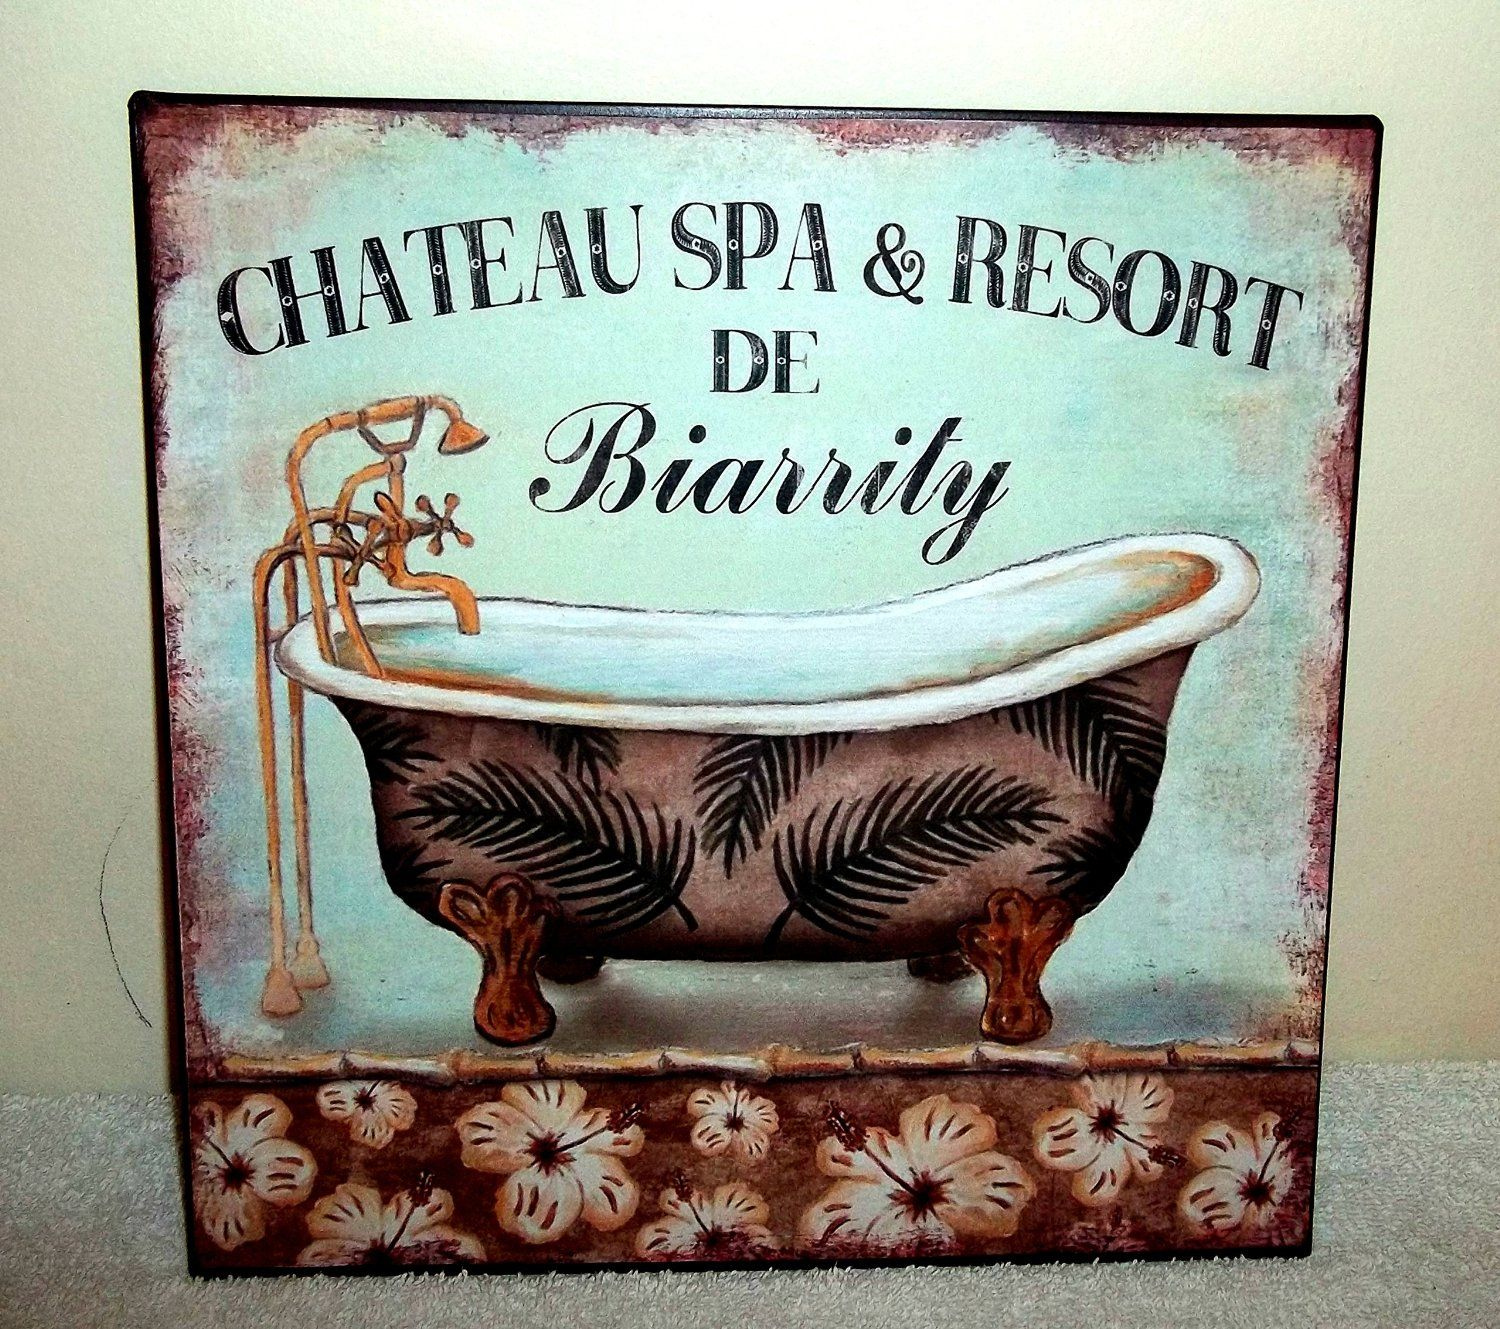 SHABBY CHIC VINTAGE FRENCH PARIS STYLE METAL WALL SIGN PLAQUE ...